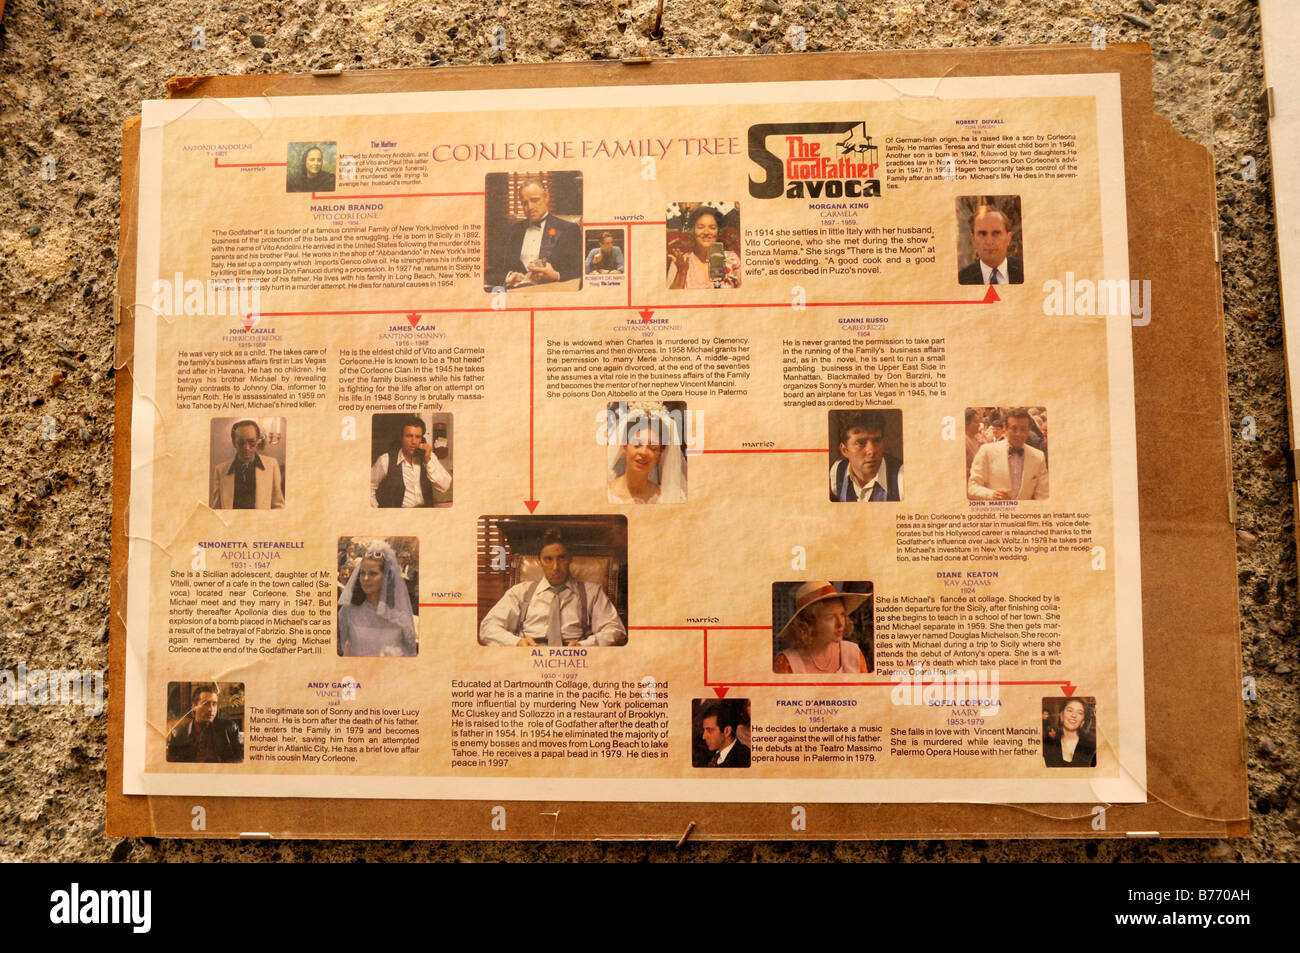 The godfather poster stock photos the godfather poster stock poster for the godfather in savoca sicily where frances ford coppola filmed some of the scenes thecheapjerseys Images